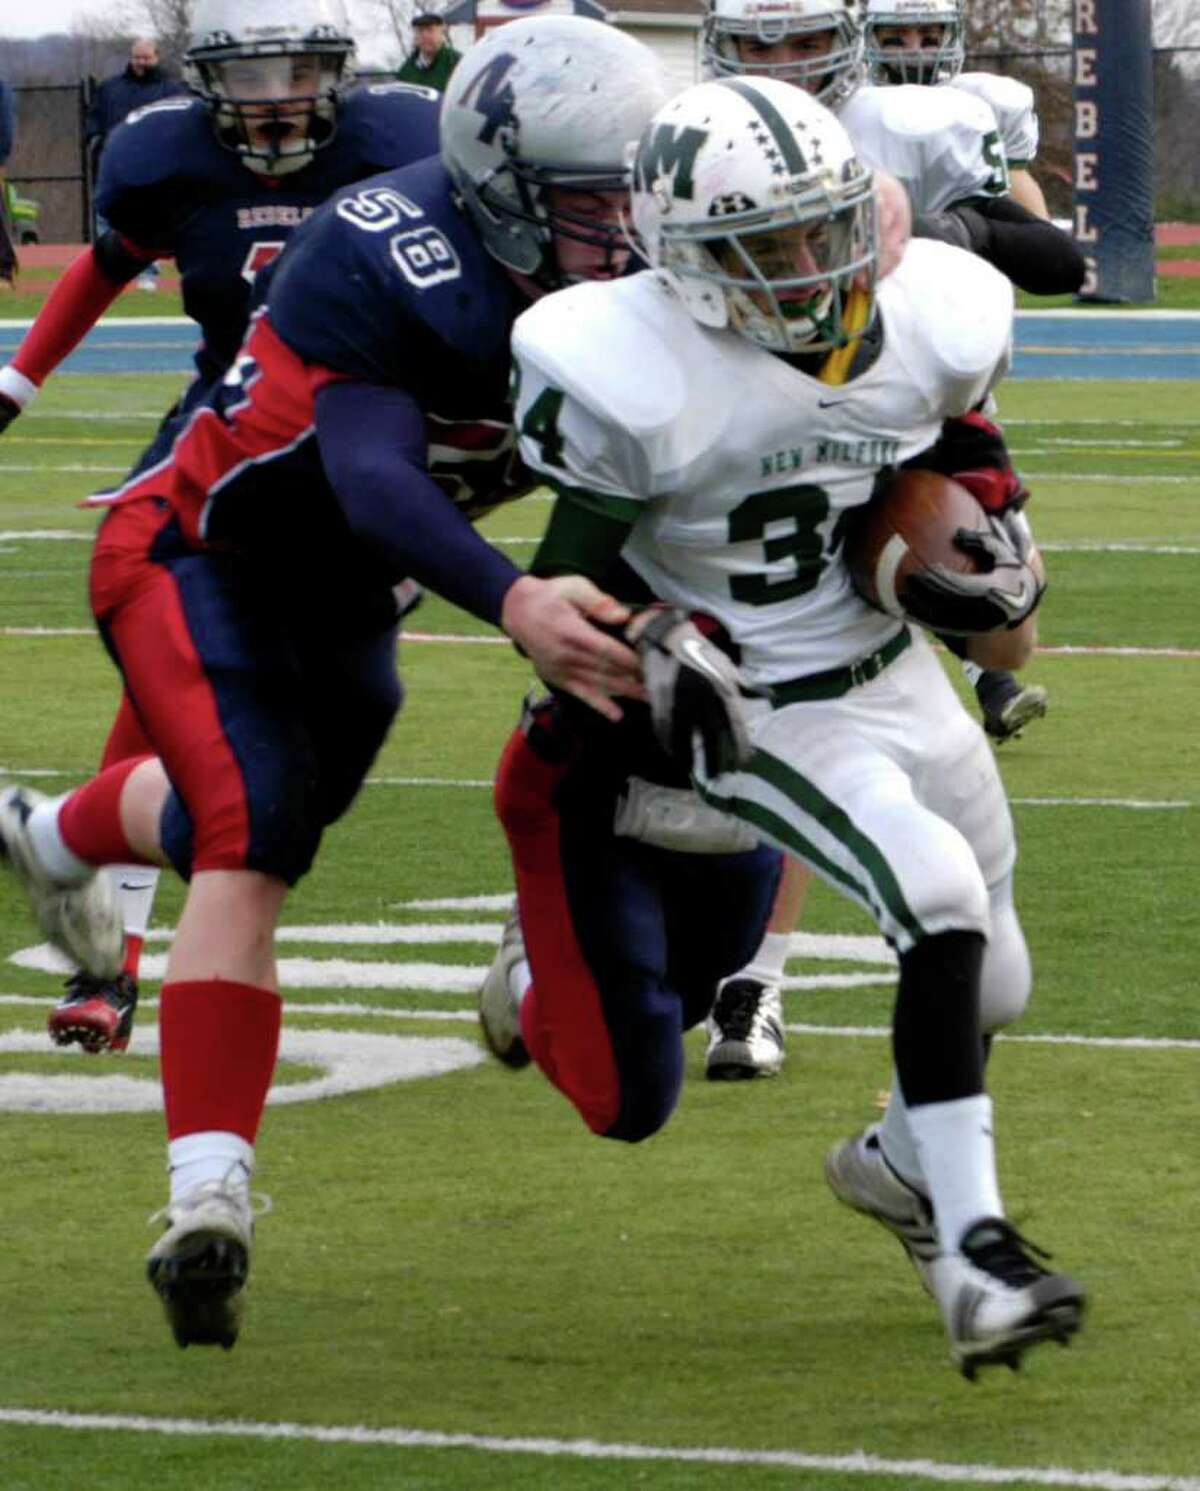 SPECTRUM/Tevon Leonard (34) drags a New Fairfield High tackler along for an extra yard or two for New Milford High School football during the Thanksgiving Day game called the Candlewood Cup at New Fairfield. Nov. 25, 2010